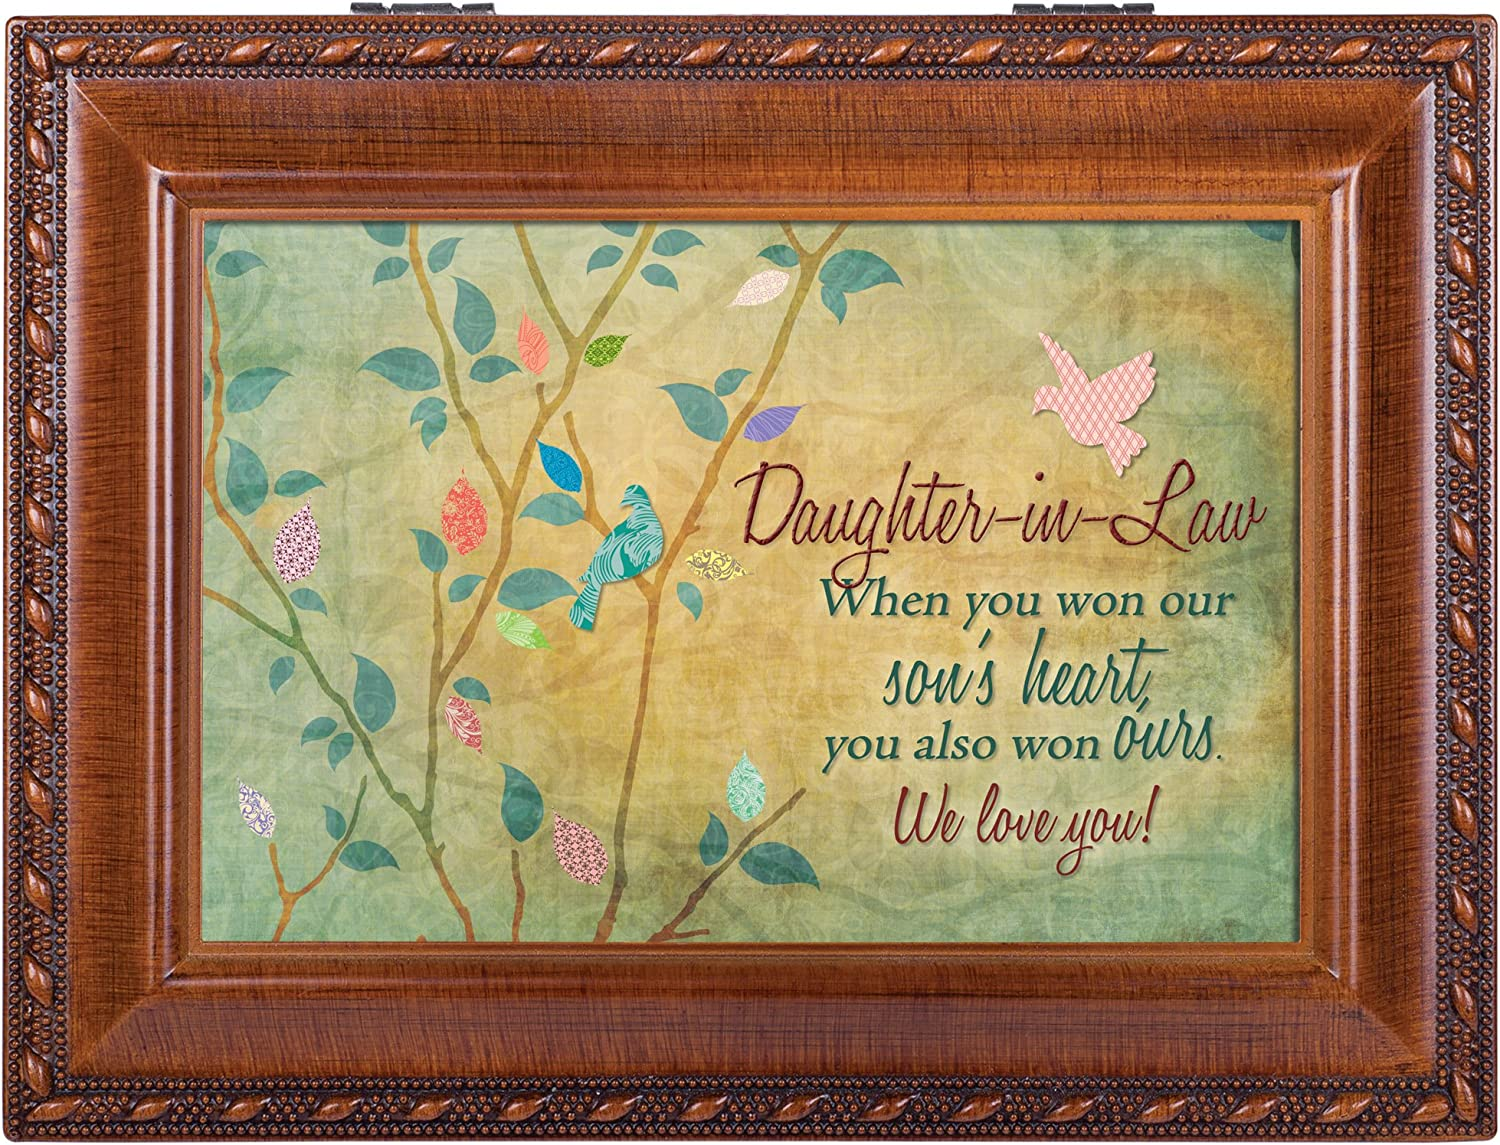 Plays You Light Up My Life Cottage Garden MB1996 Daughter-in-Law Rich Woodgrain Finish Jewelry Music Box